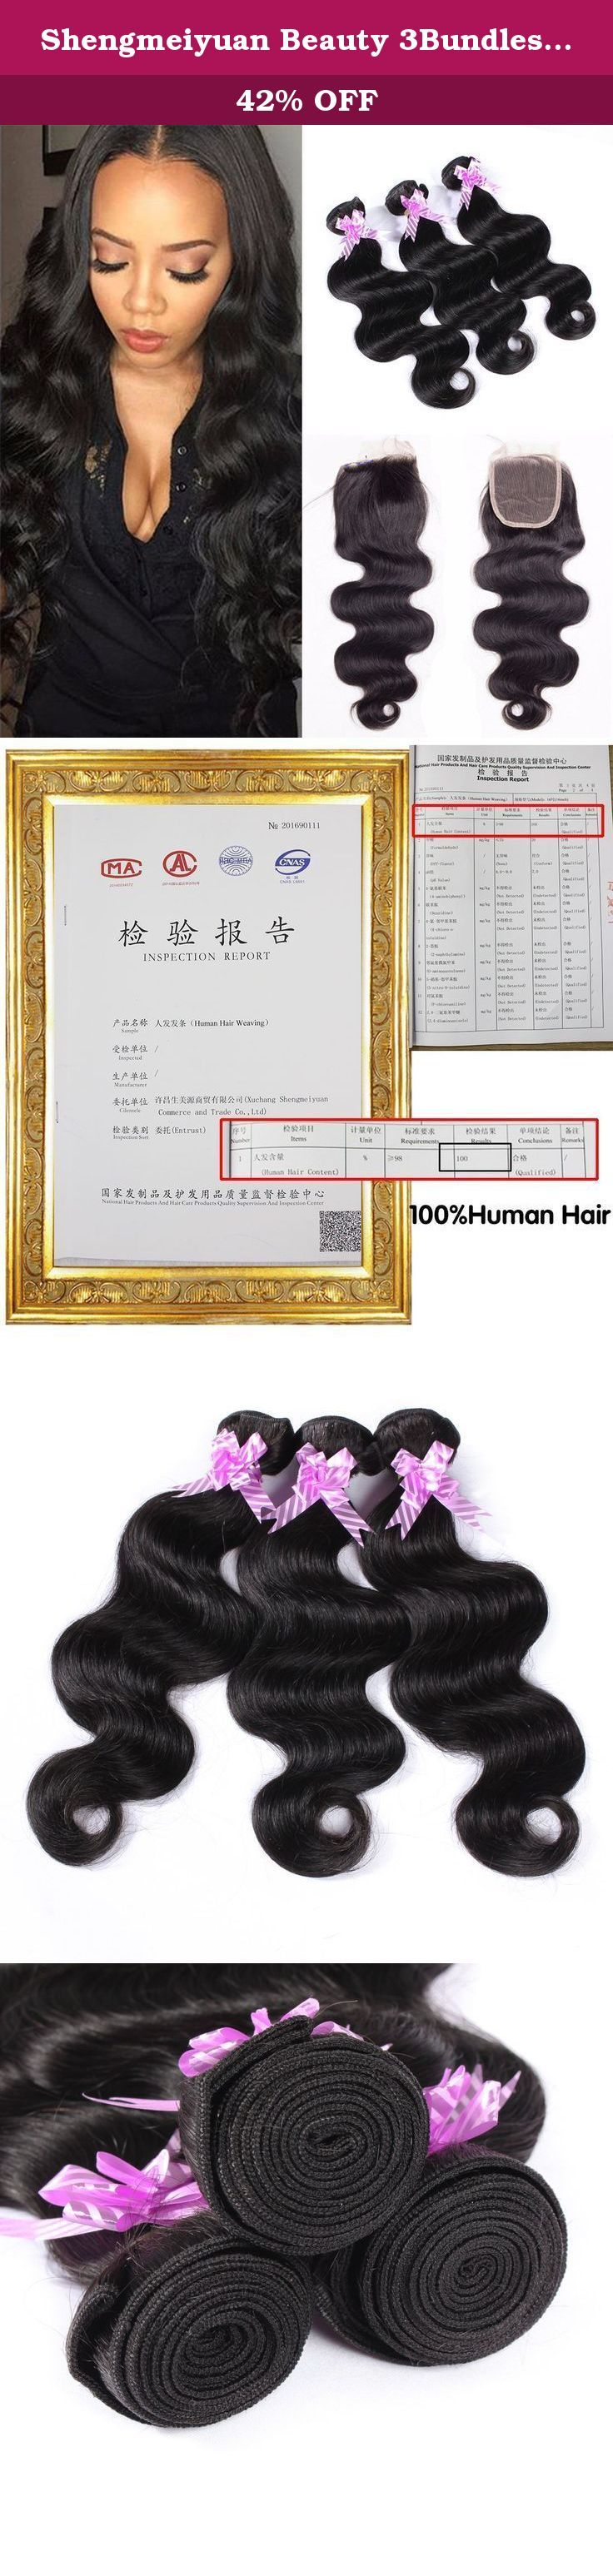 Shengmeiyuan Beauty 3Bundles Brazilian Body Wave Human Hair with Closure 100% 9A Unprocessed Brazilian Human Hair Weave Extensions Bundles (20 22 24 with 20inch). Brand Name: Shengmeiyuan Beauty Hair Hair Material: 100% Virgin Hair, Brazilian Body Wave Material Grade :9A Grade Virgin Brazilian Hair Hair Color: Natural Color Hair Style: Brazilian Body Wave Hair Extension Items per Package:Brazilian Hair 3 Bundles Hair Length: 8, 10, 12, 14, 16, 18, 20, 22, 24, 26, 28, 30 inches,Any Mix…